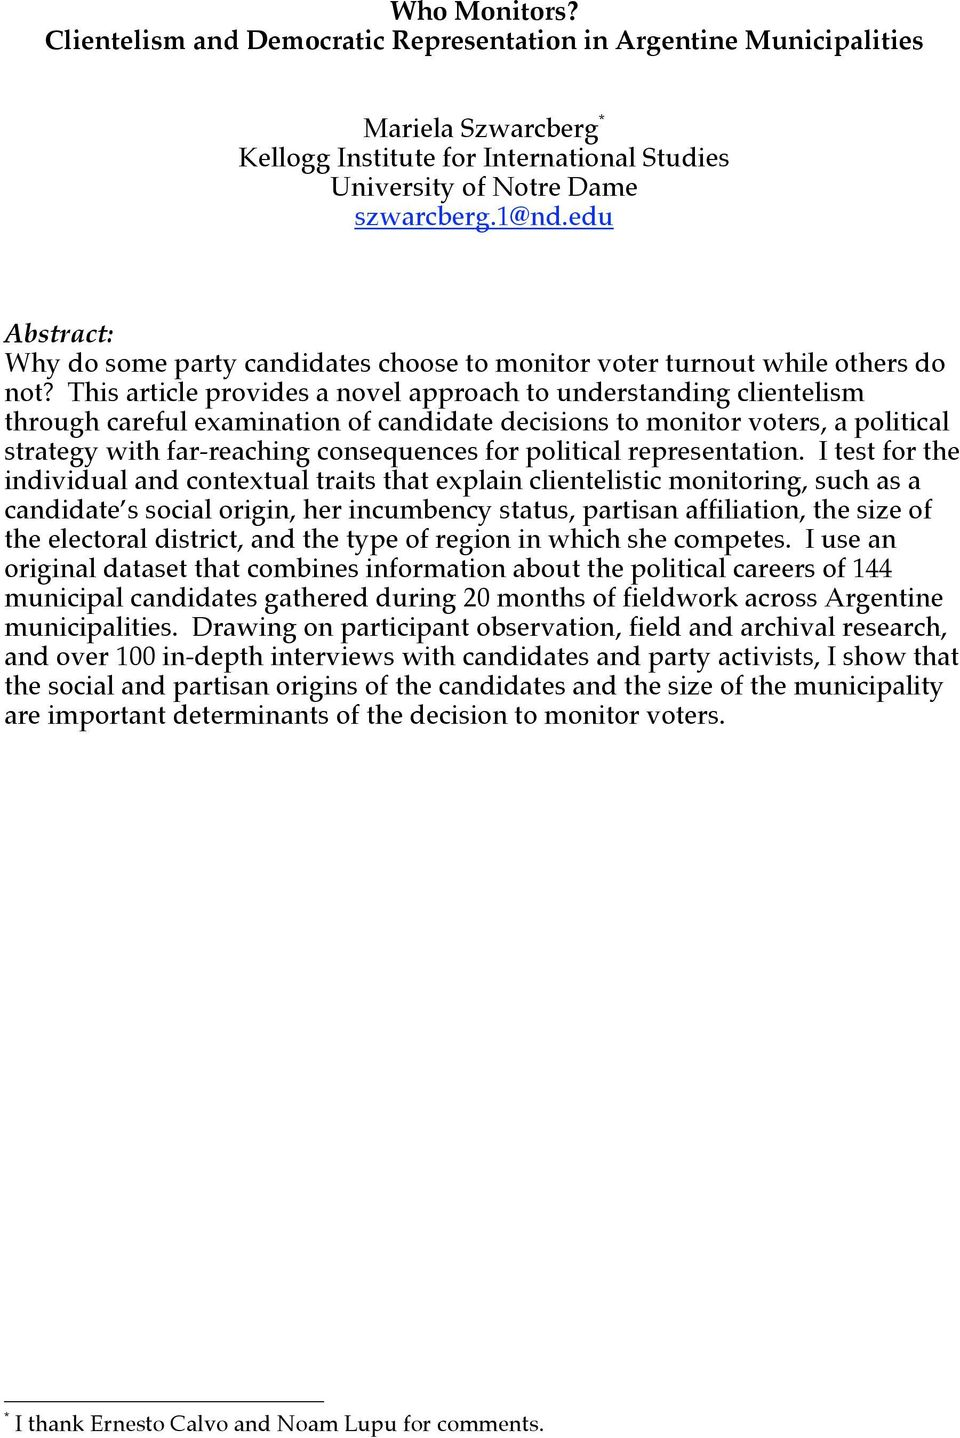 This article provides a novel approach to understanding clientelism through careful examination of candidate decisions to monitor voters, a political strategy with far-reaching consequences for